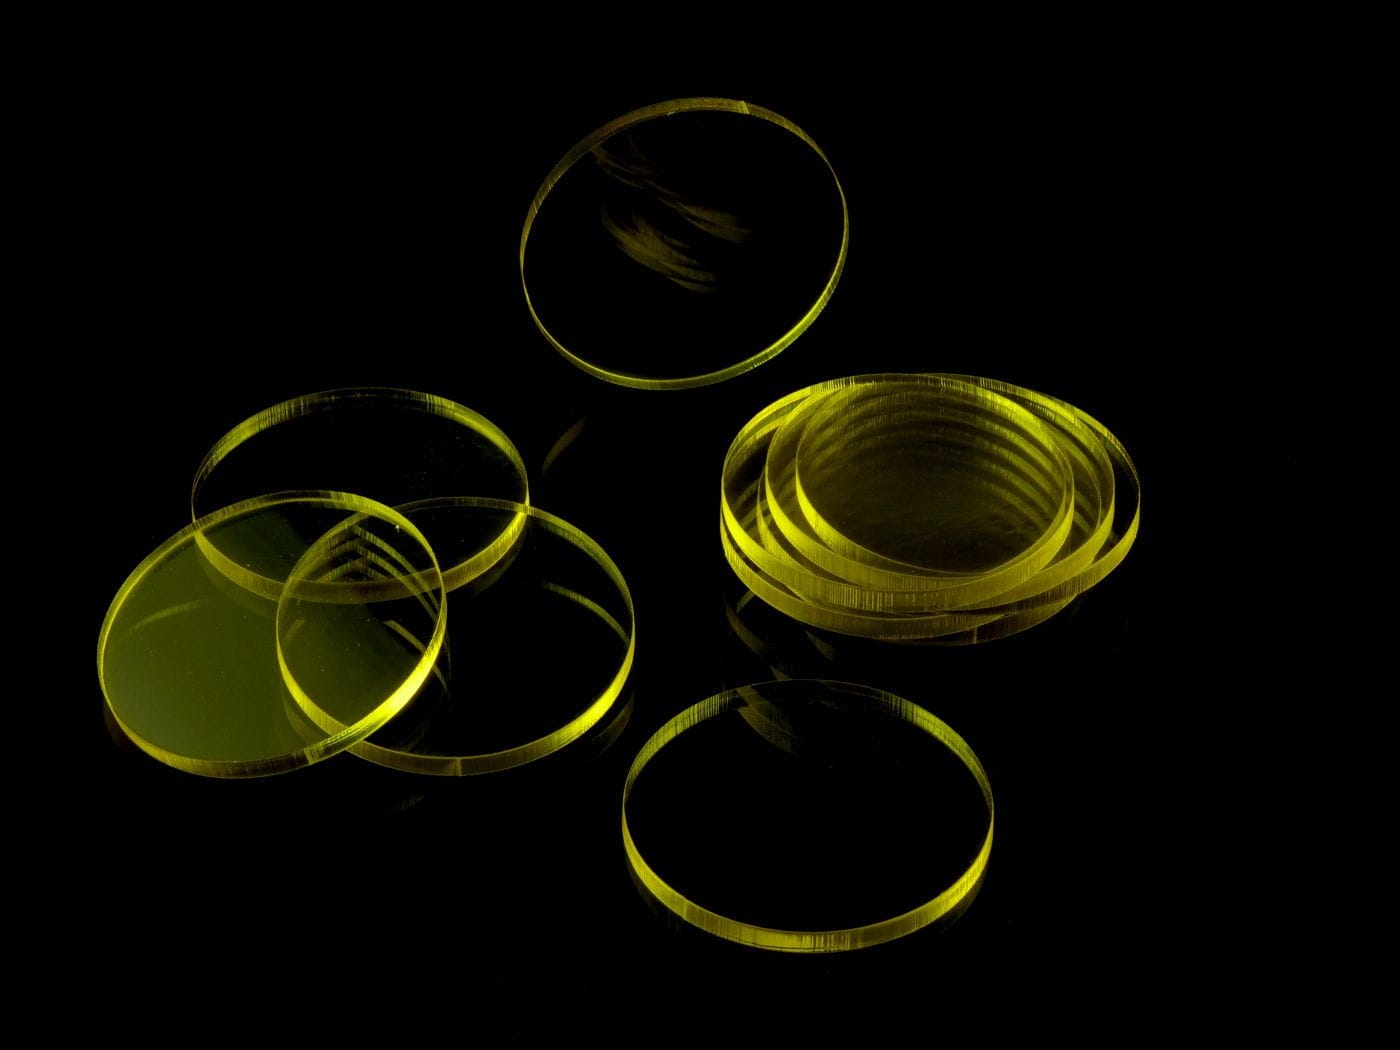 Acrylic miniature bases (10 pcs), round, clear, yellow, 50 x 3 mm - 2